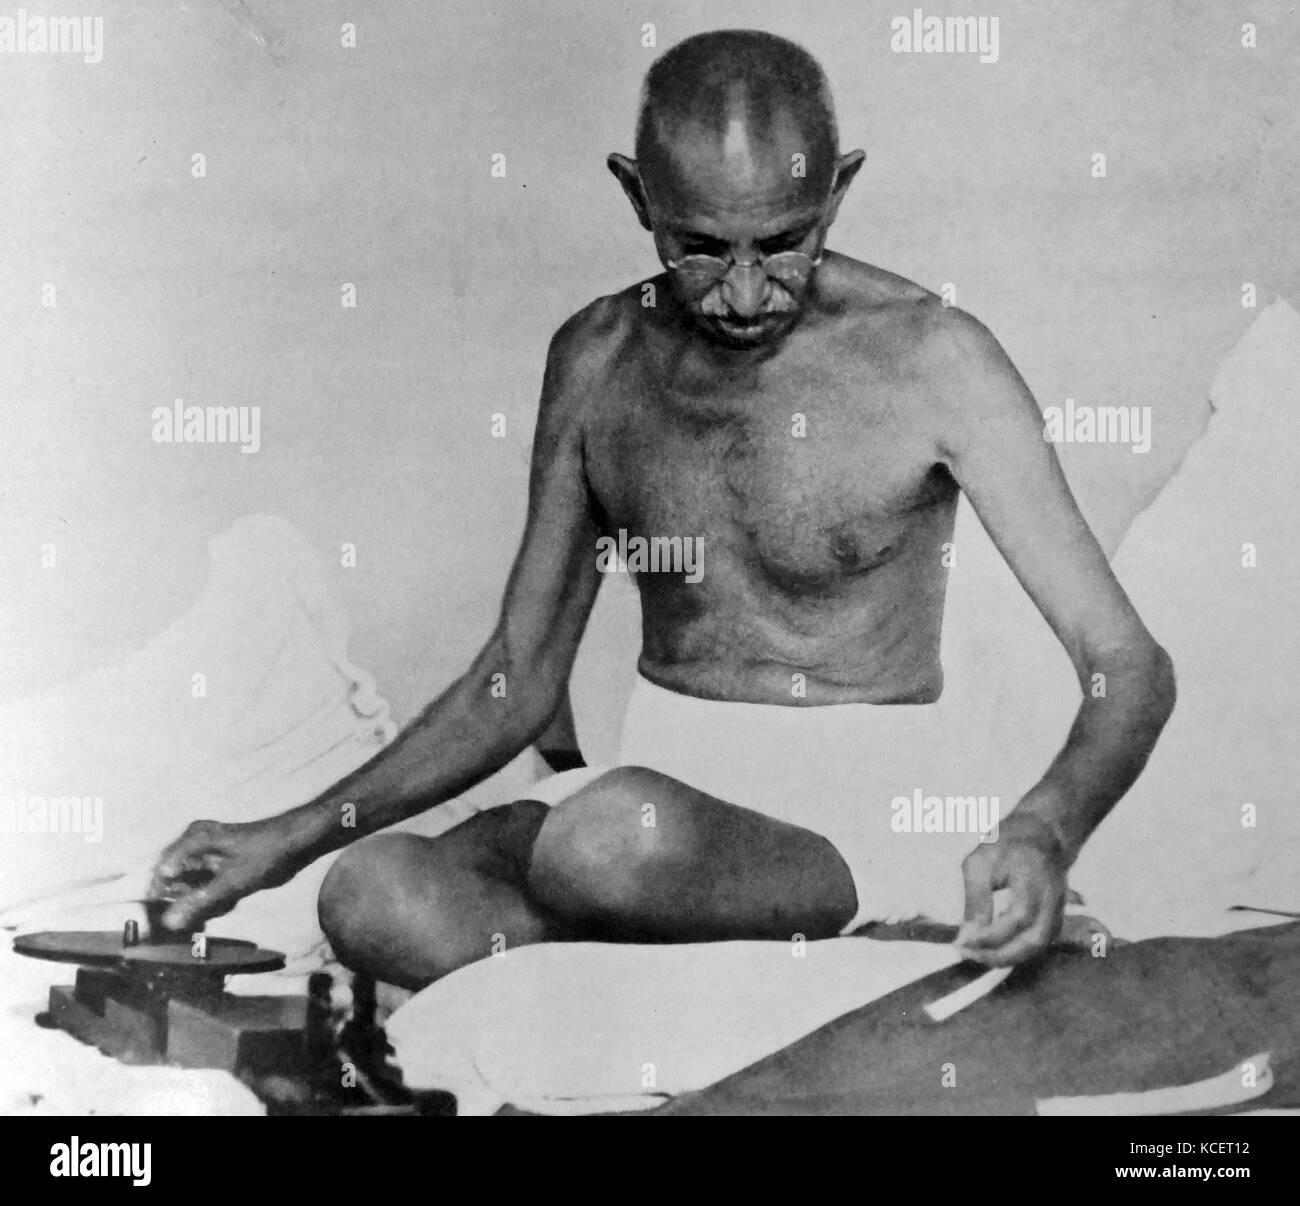 the methods of gandhi Mohandas gandhi's reputation as the indian spiritual and political leader who coordinated and led a successful national struggle for independence against british imperial rule on the strength of a non-violent movement survives largely intact.